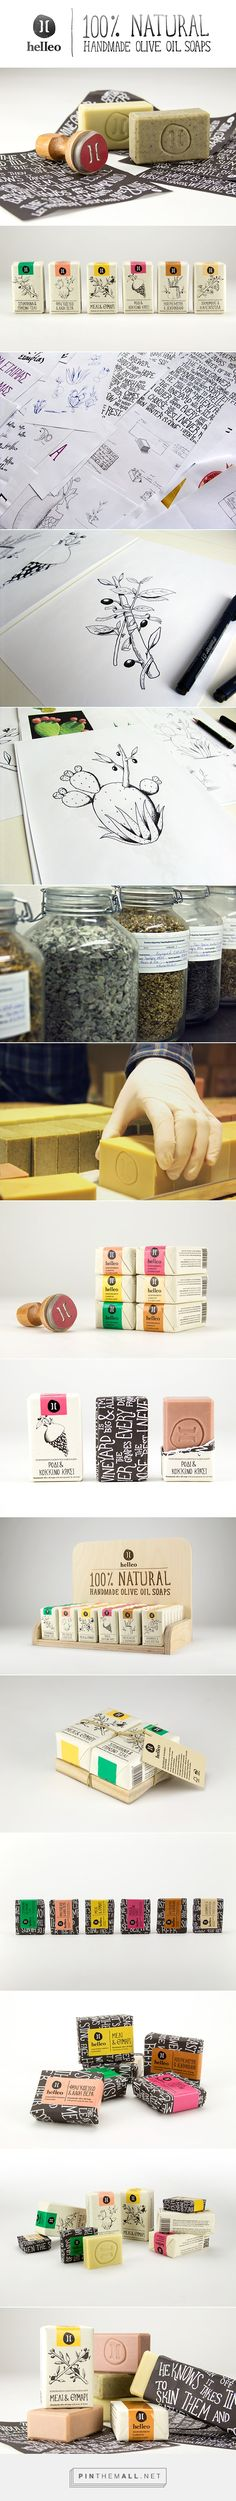 Helleo / Natural soaps designed by til noon - created via http://pinthemall.net